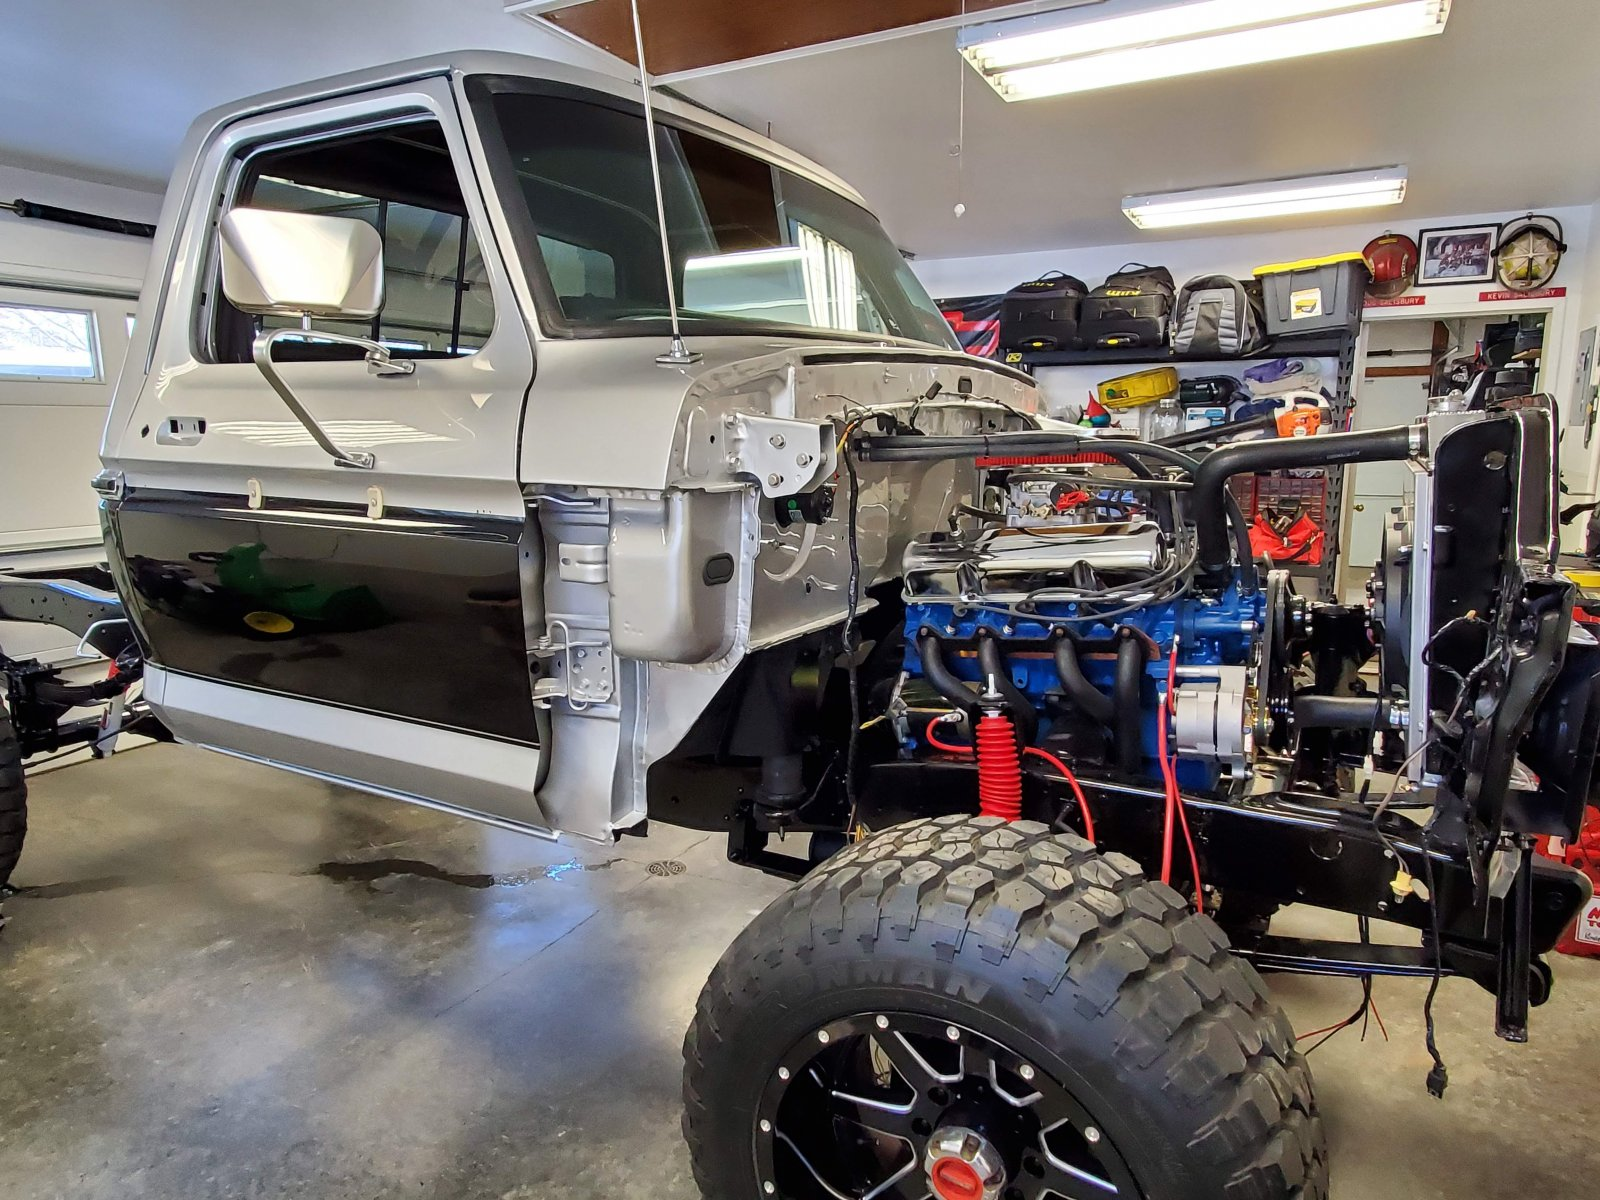 1974 F250 Highboy With a 390 FE Ground Up Restoration From Wisconsin 3.jpg